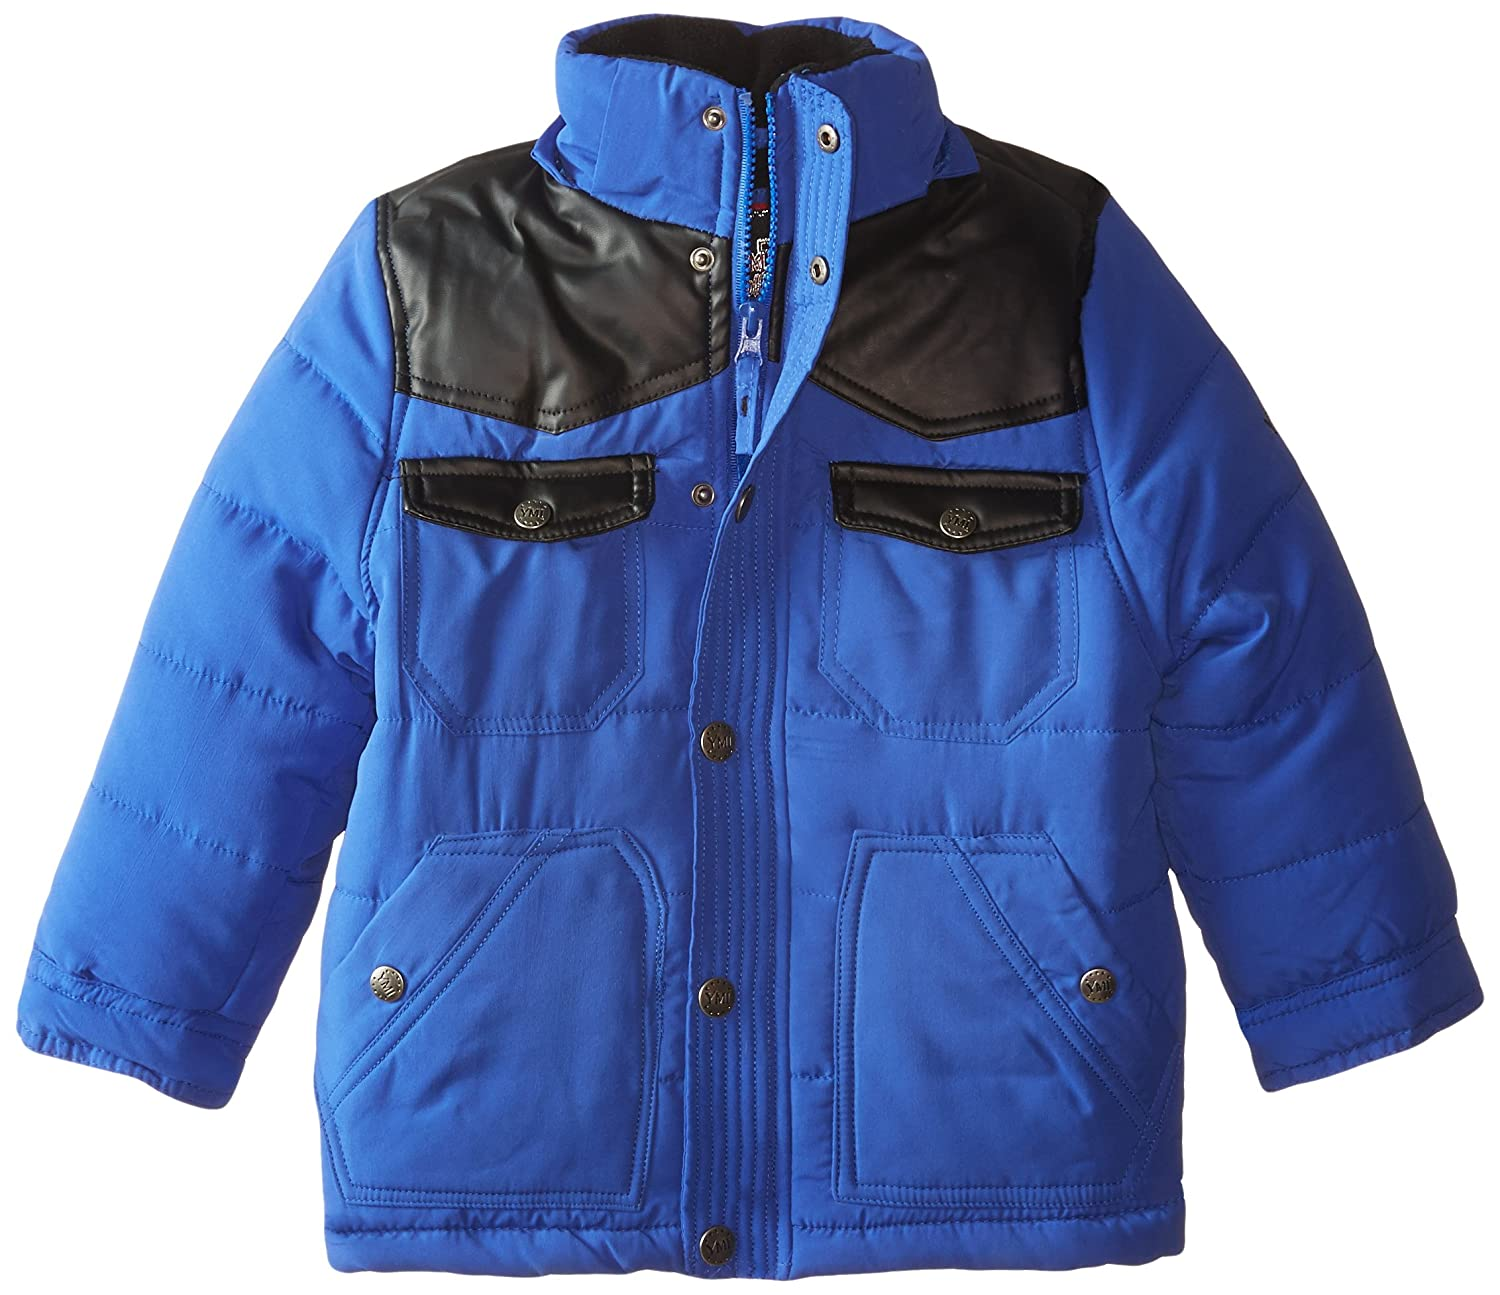 YMI Boys Bubble Jacket with Contrasting Pleather Yoke and Detachable Hood YMI Boys 2-7 1355TG